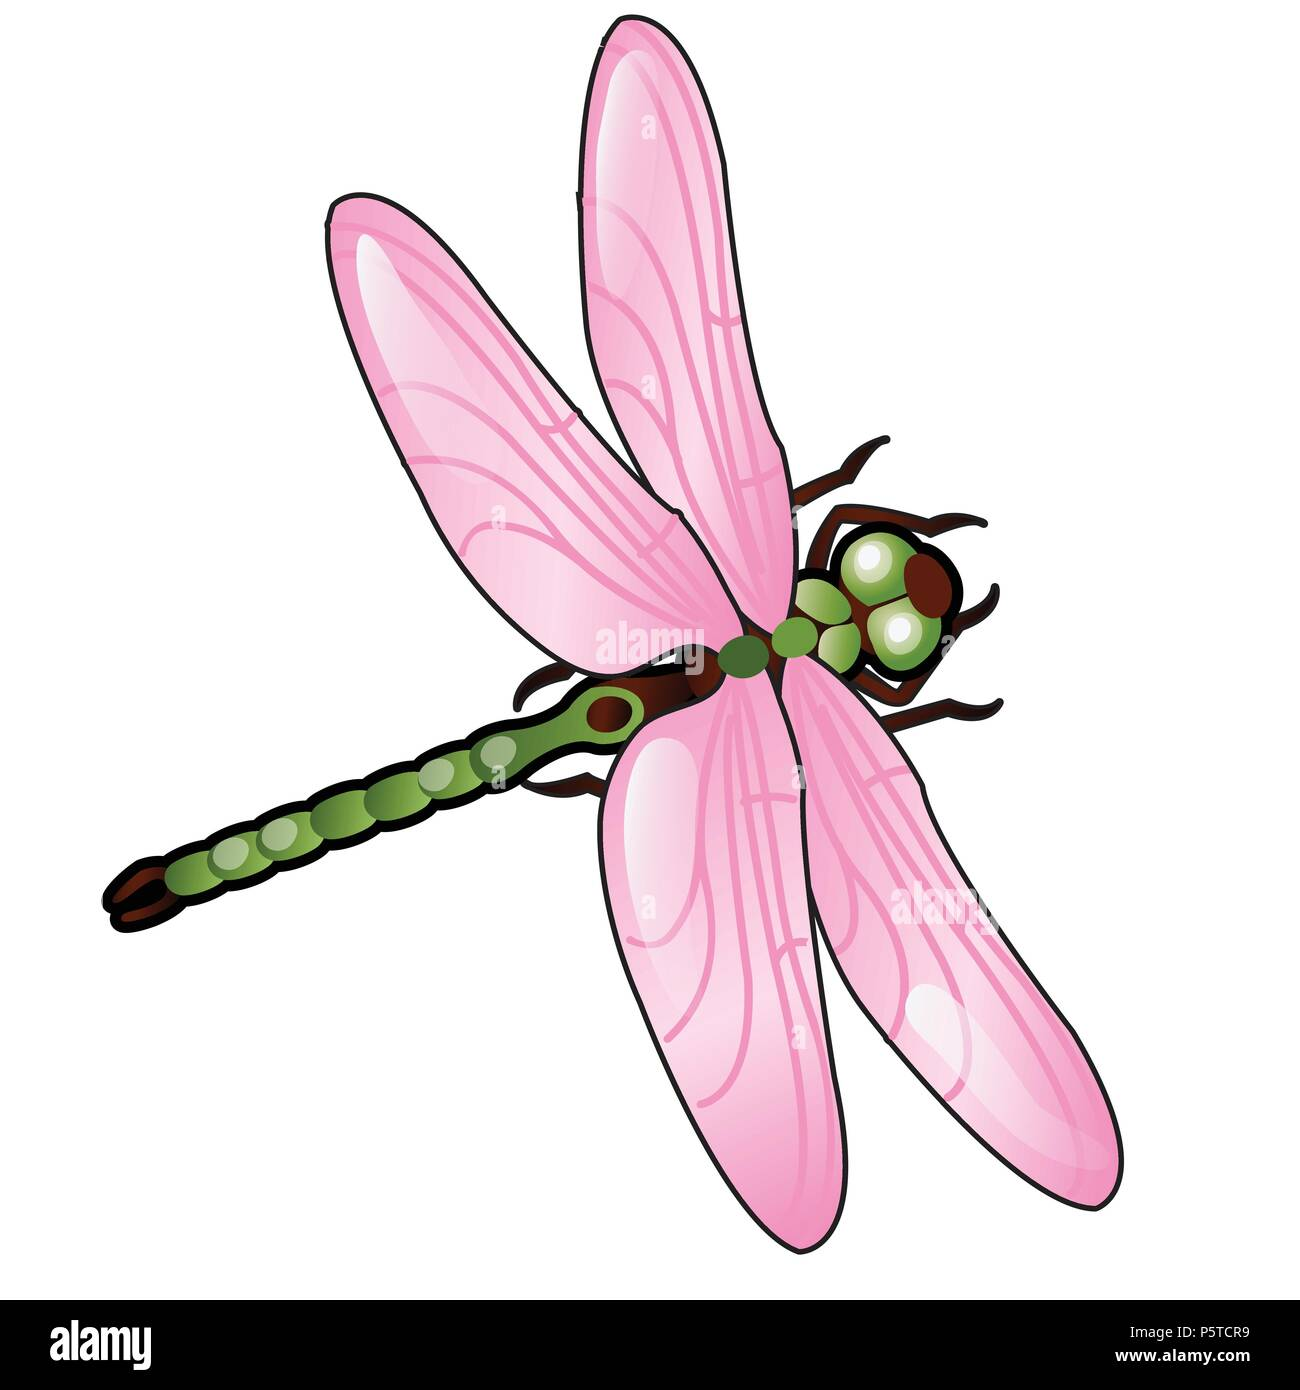 Cartoon dragonfly with pink wings isolated on white background. Vector illustration. - Stock Vector